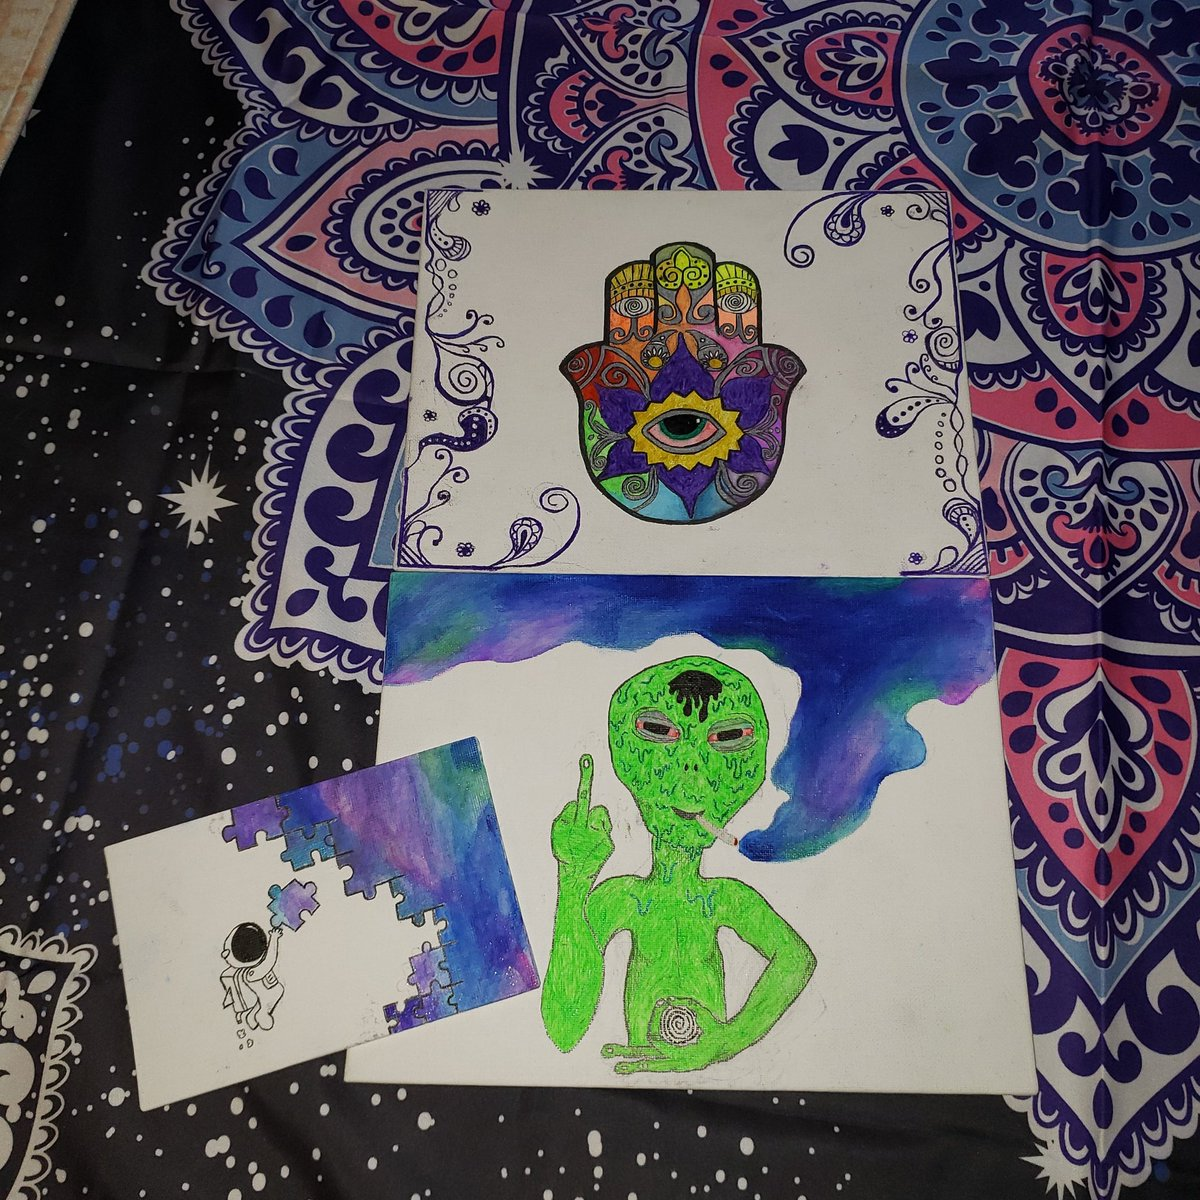 drawing has really helped with my anxiety. it gives me something to put my focus, and i am so grateful!! #handmade #hamsa #hamsadrawing #forsale #artforsale #buymyart #galaxyart #alienart #trippyart #trippypic.twitter.com/W0fuK5l32B